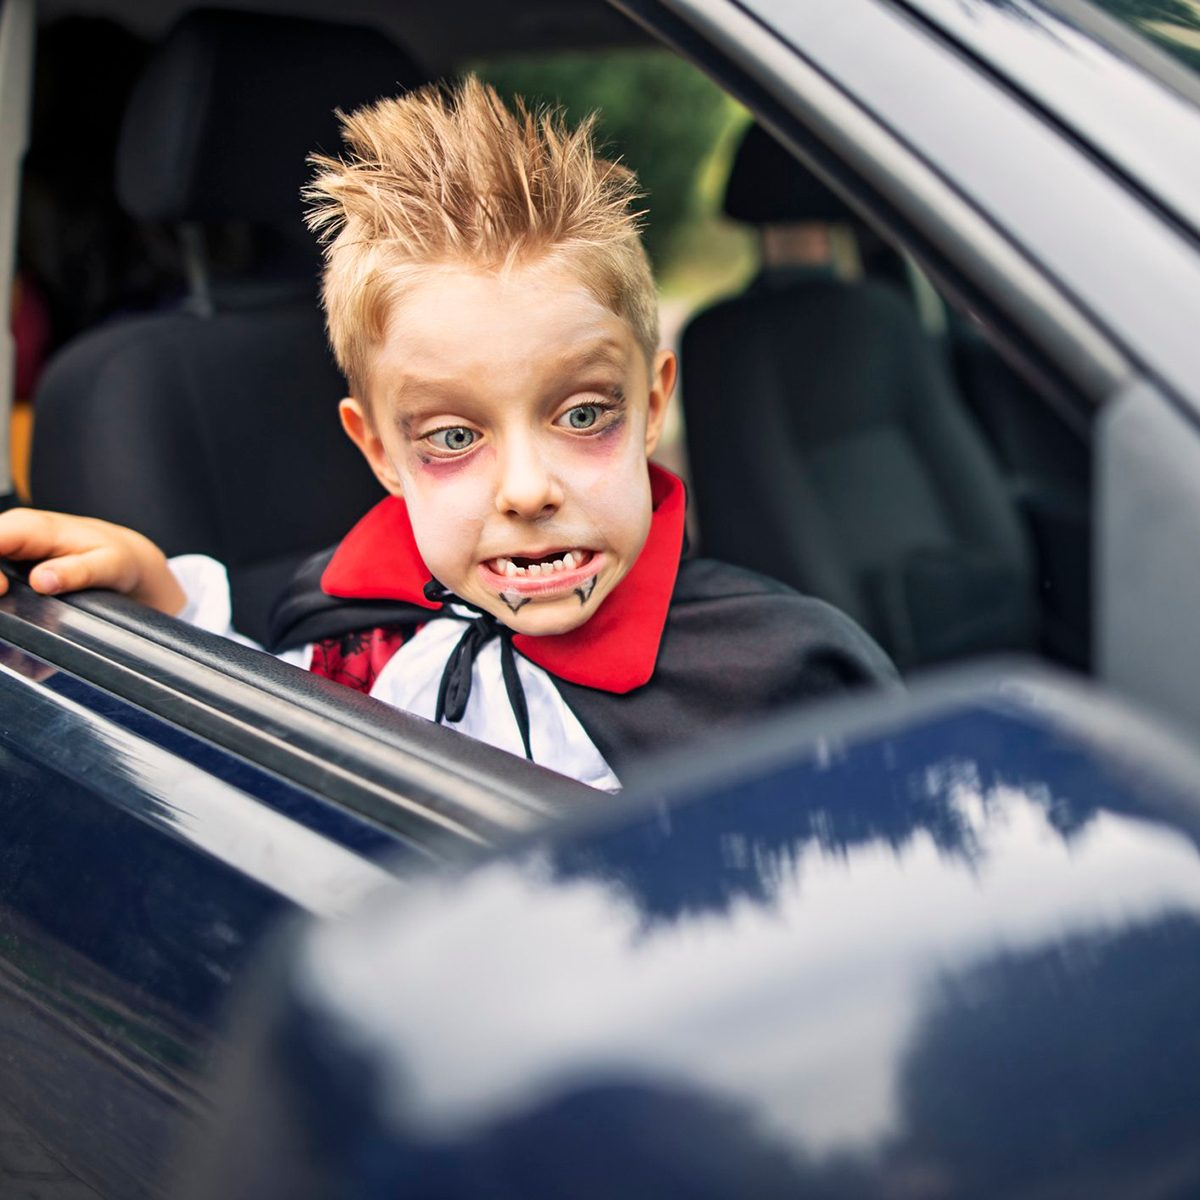 Drive-by trick-or-treating